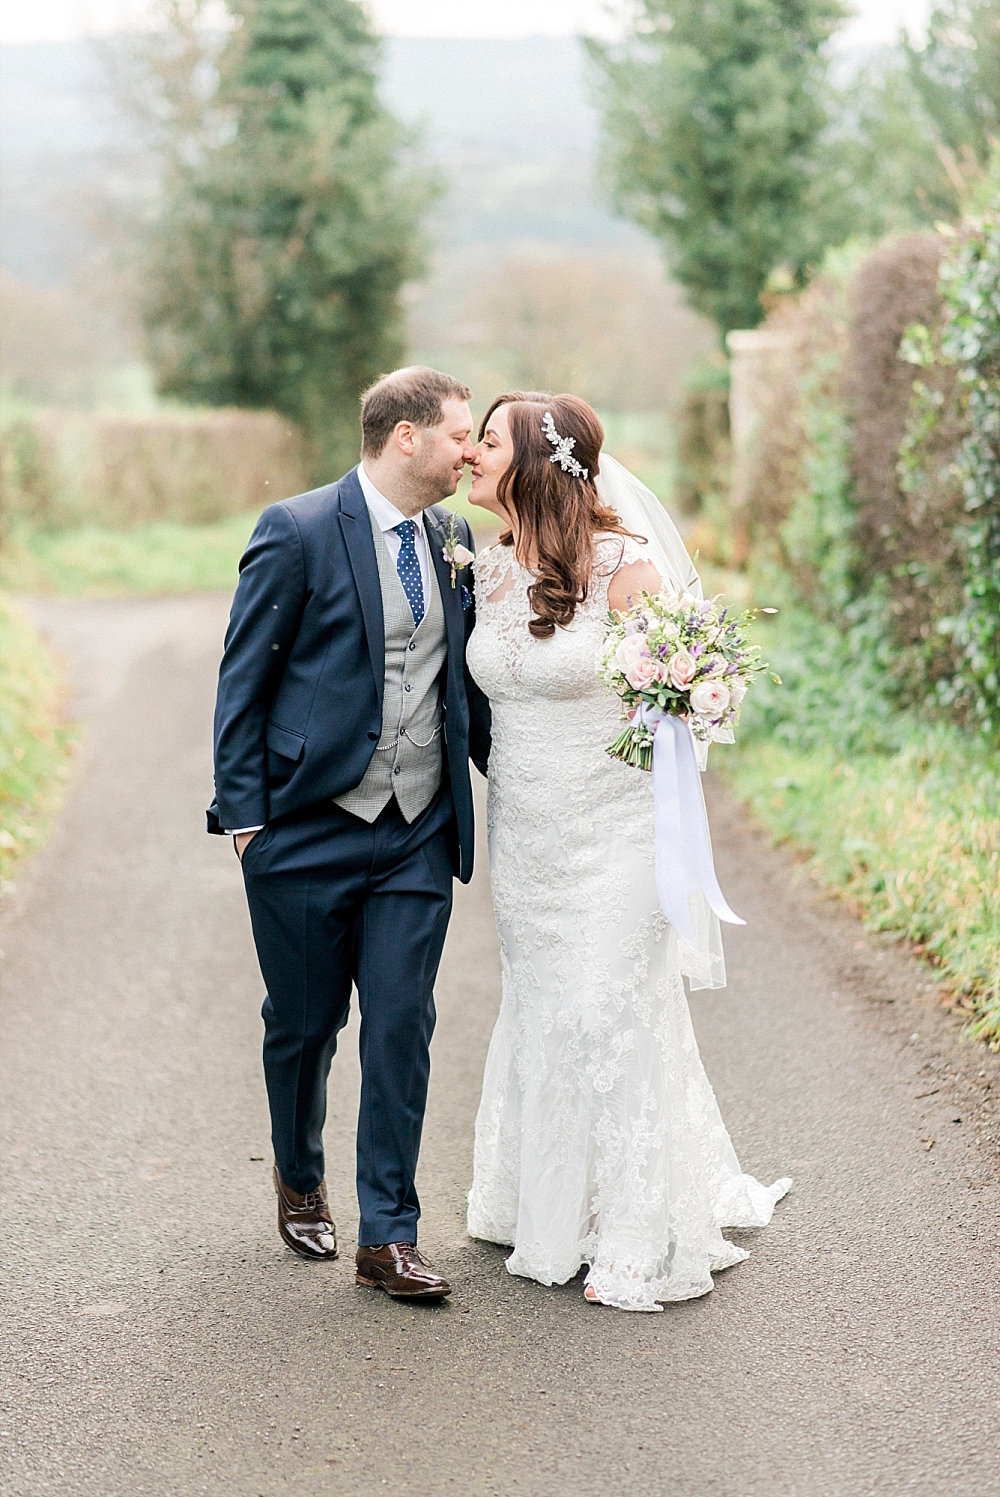 Protected: Jenna and Matt's Shireburn Arms Wedding